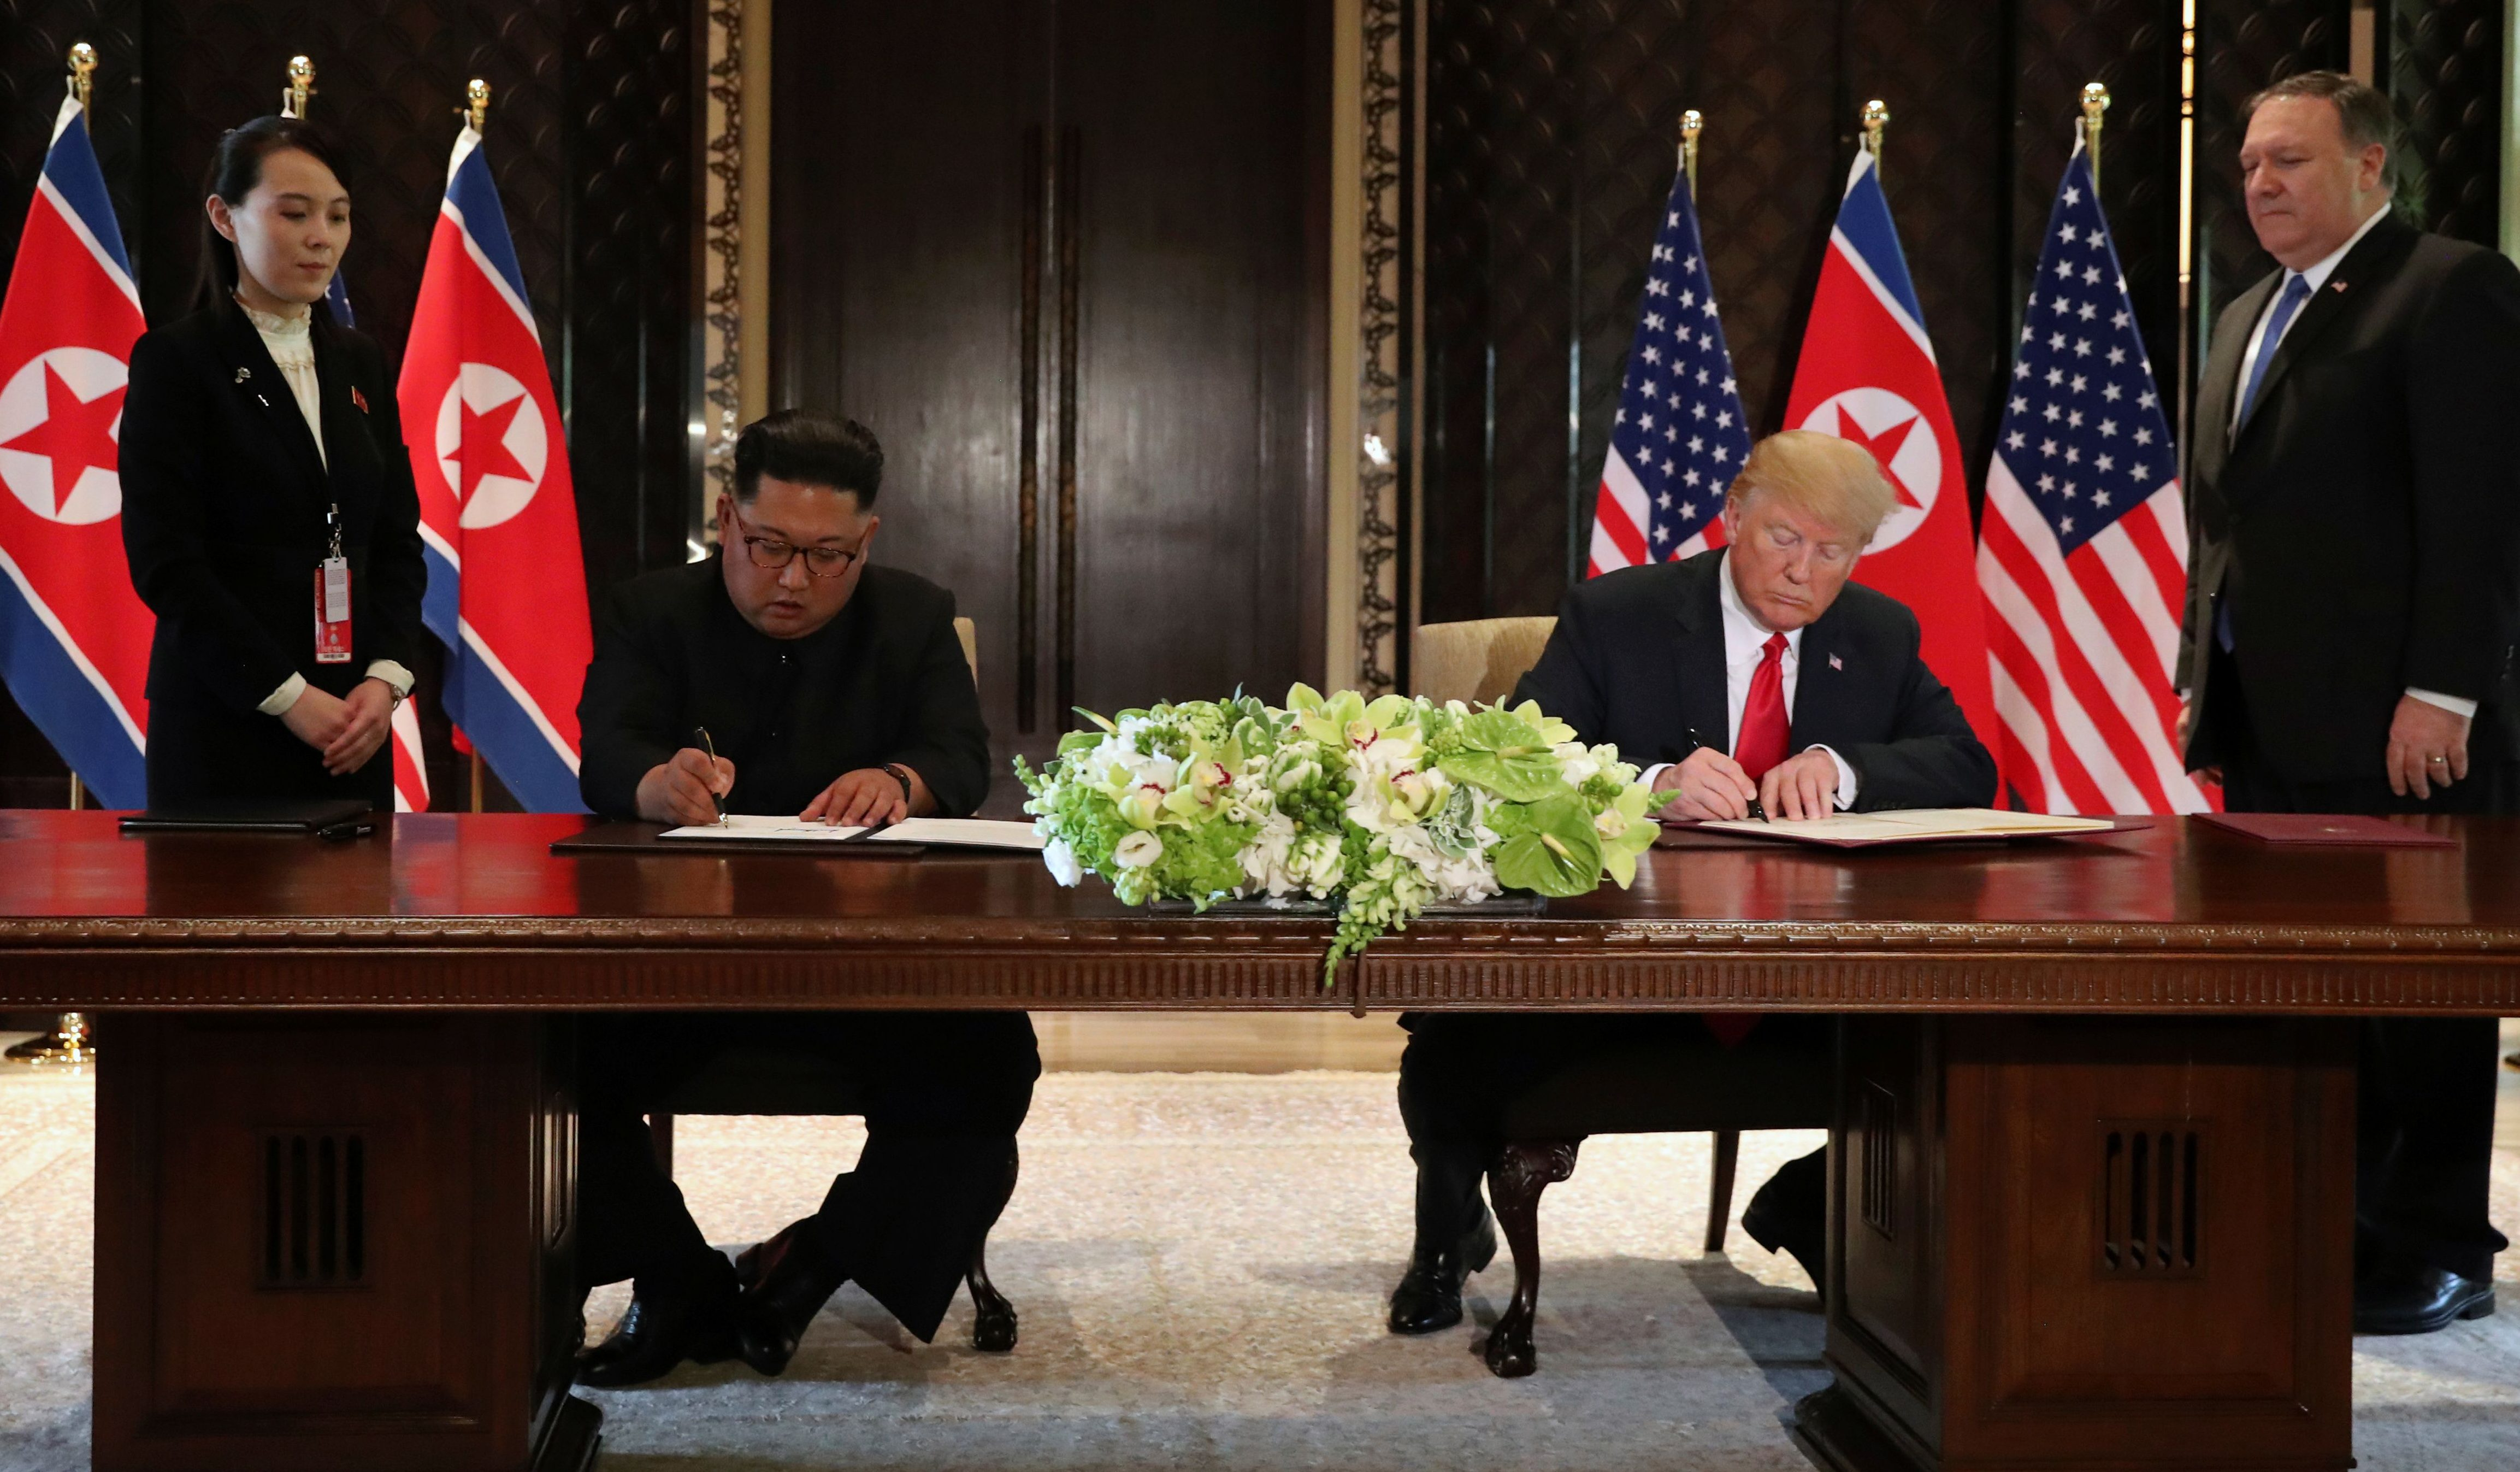 U.S. President Donald Trump and North Korea's leader Kim Jong Un sign documents that acknowledge the progress of the talks and pledge to keep momentum going, after their summit at the Capella Hotel on Sentosa island in Singapore June 12, 2018. As they are watched by Kim Yo Jong, sister of North Korean leader Kim Jong Un and U.S. Secretary of State Mike Pompeo. REUTERS/Jonathan Ernst - RC1284635E50